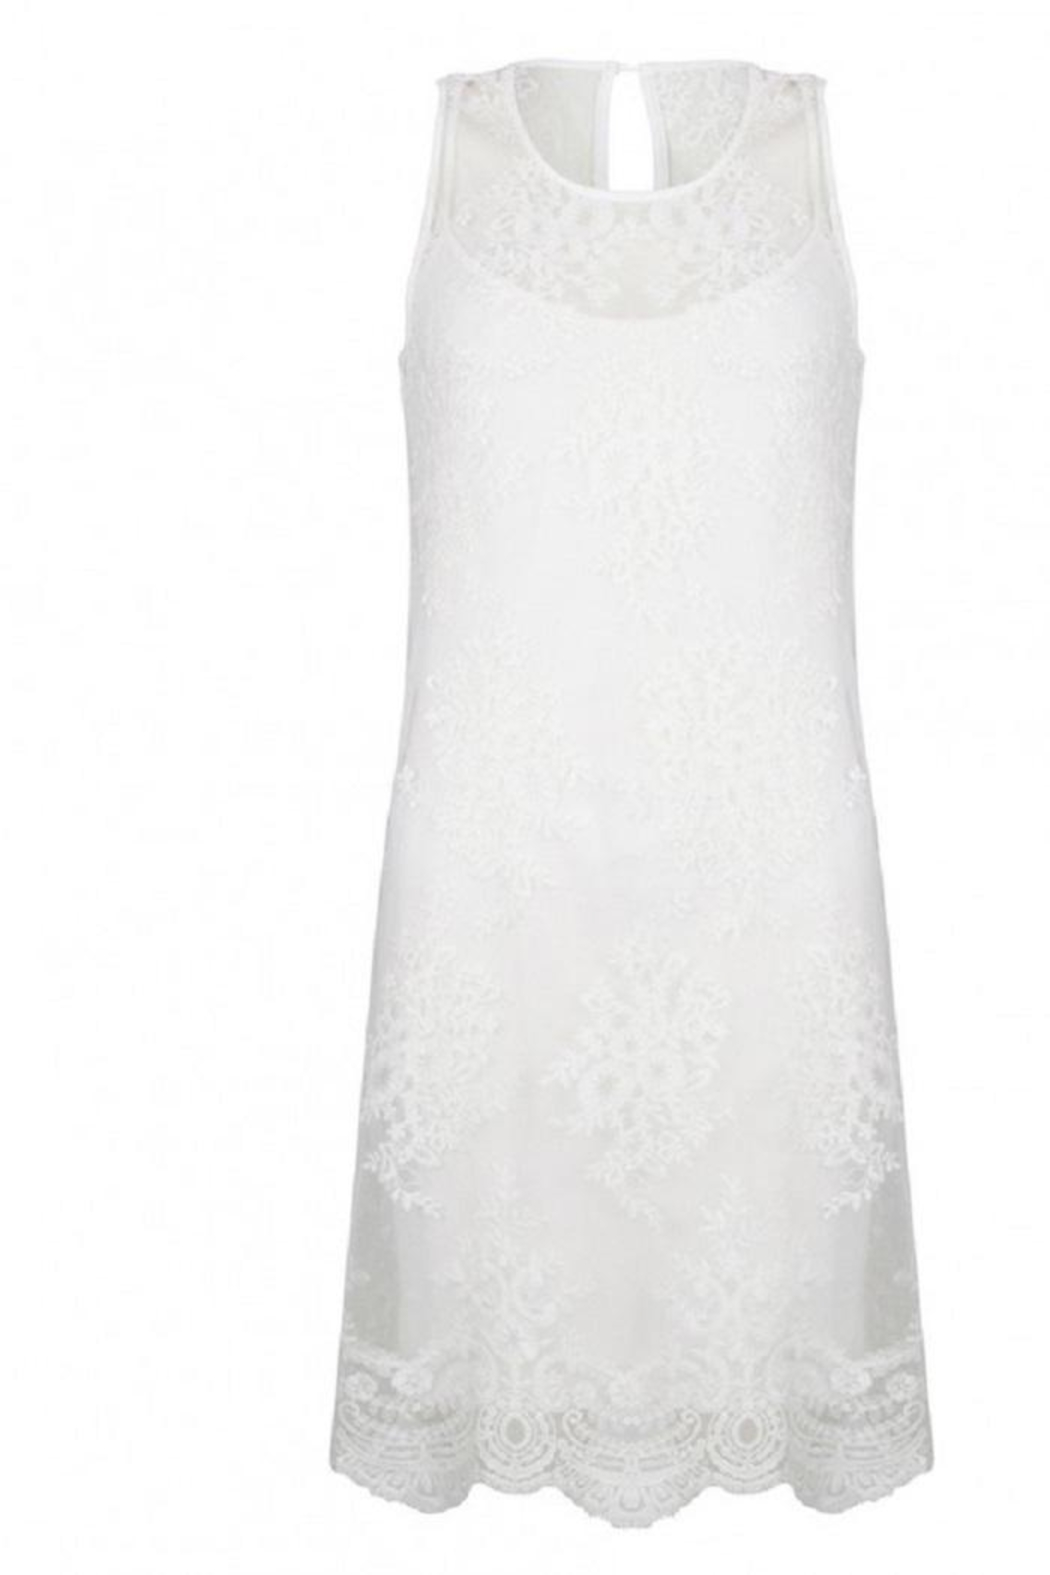 EsQualo Embroidery Mesh Dress - Front Cropped Image